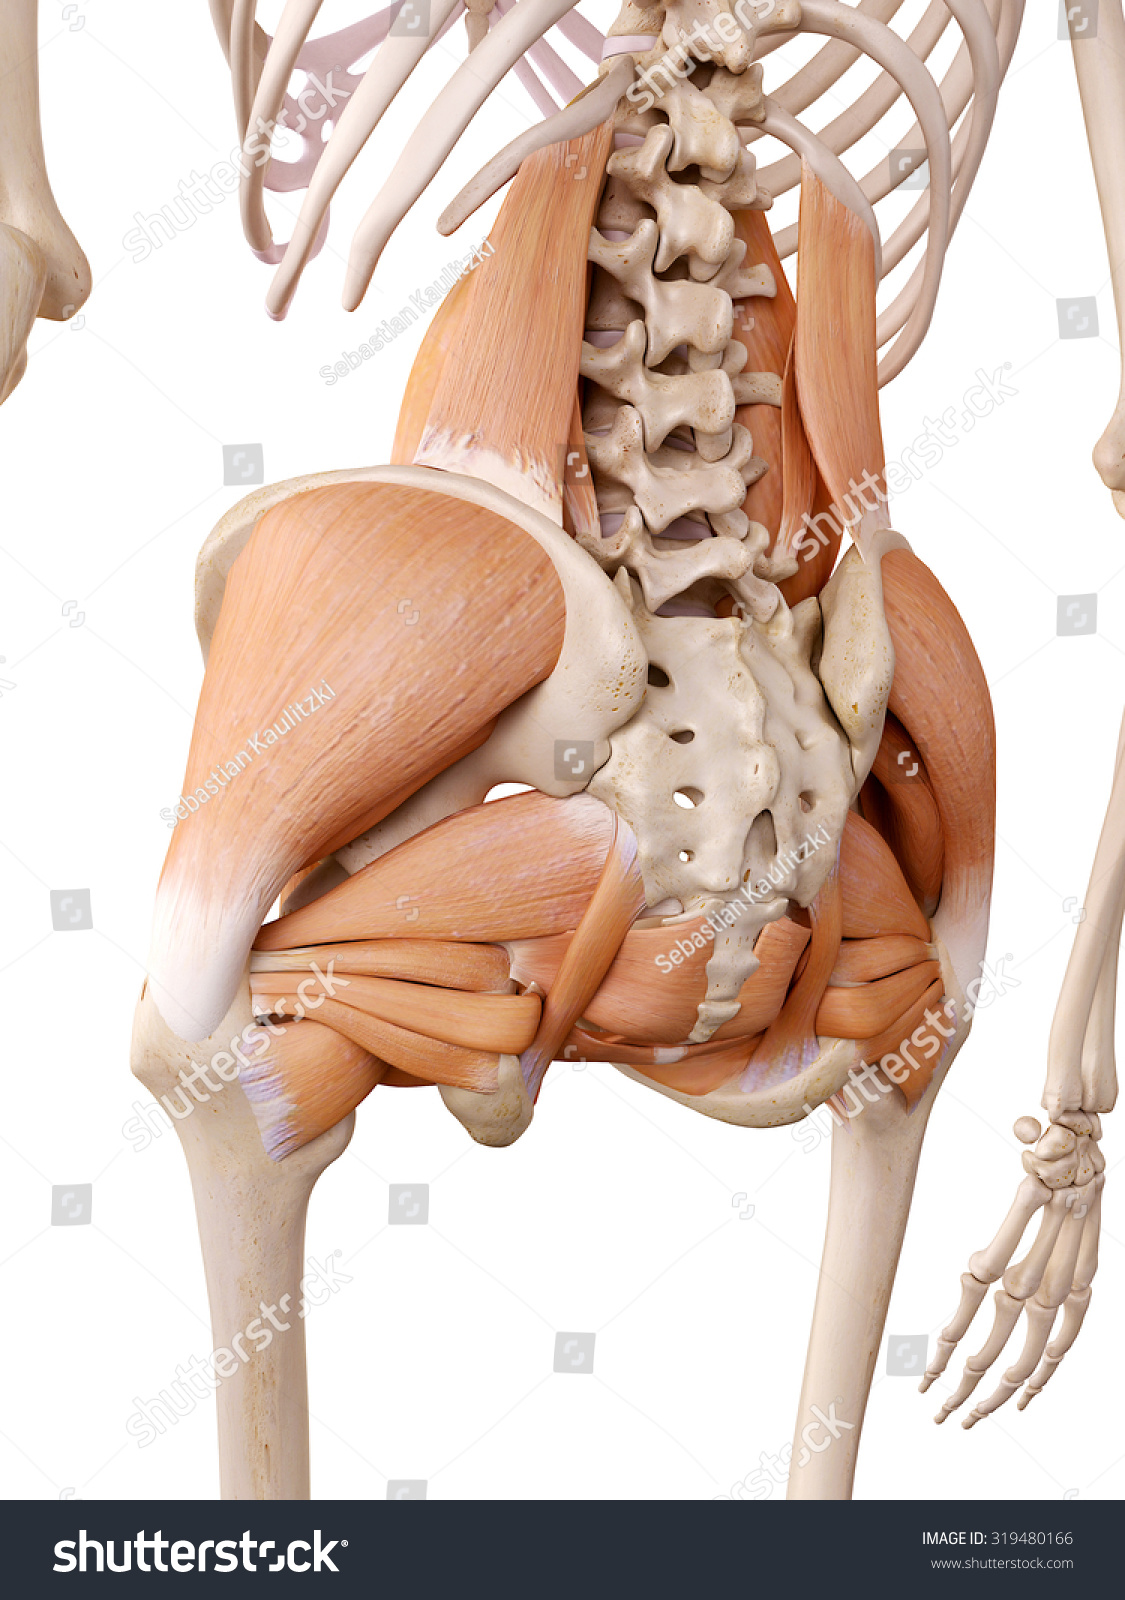 Medically Accurate Anatomy Illustration Hip Muscles Stock ...